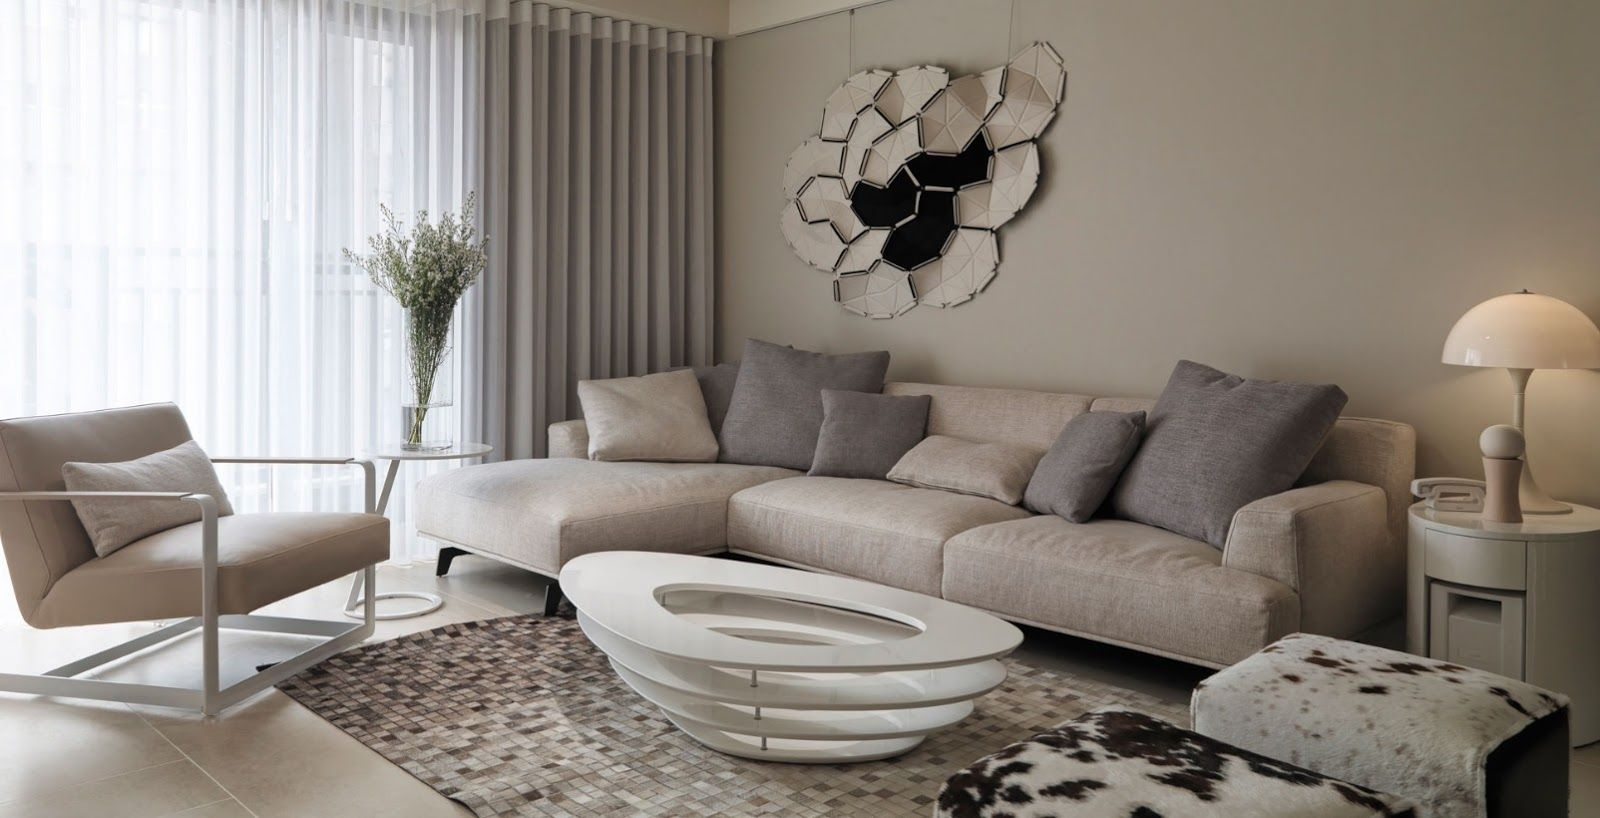 50 Ways To Increase The Value Of Your Home Neutral Living Room Design Paint Colors For Living Room Beige Living Rooms Neutral colored living room